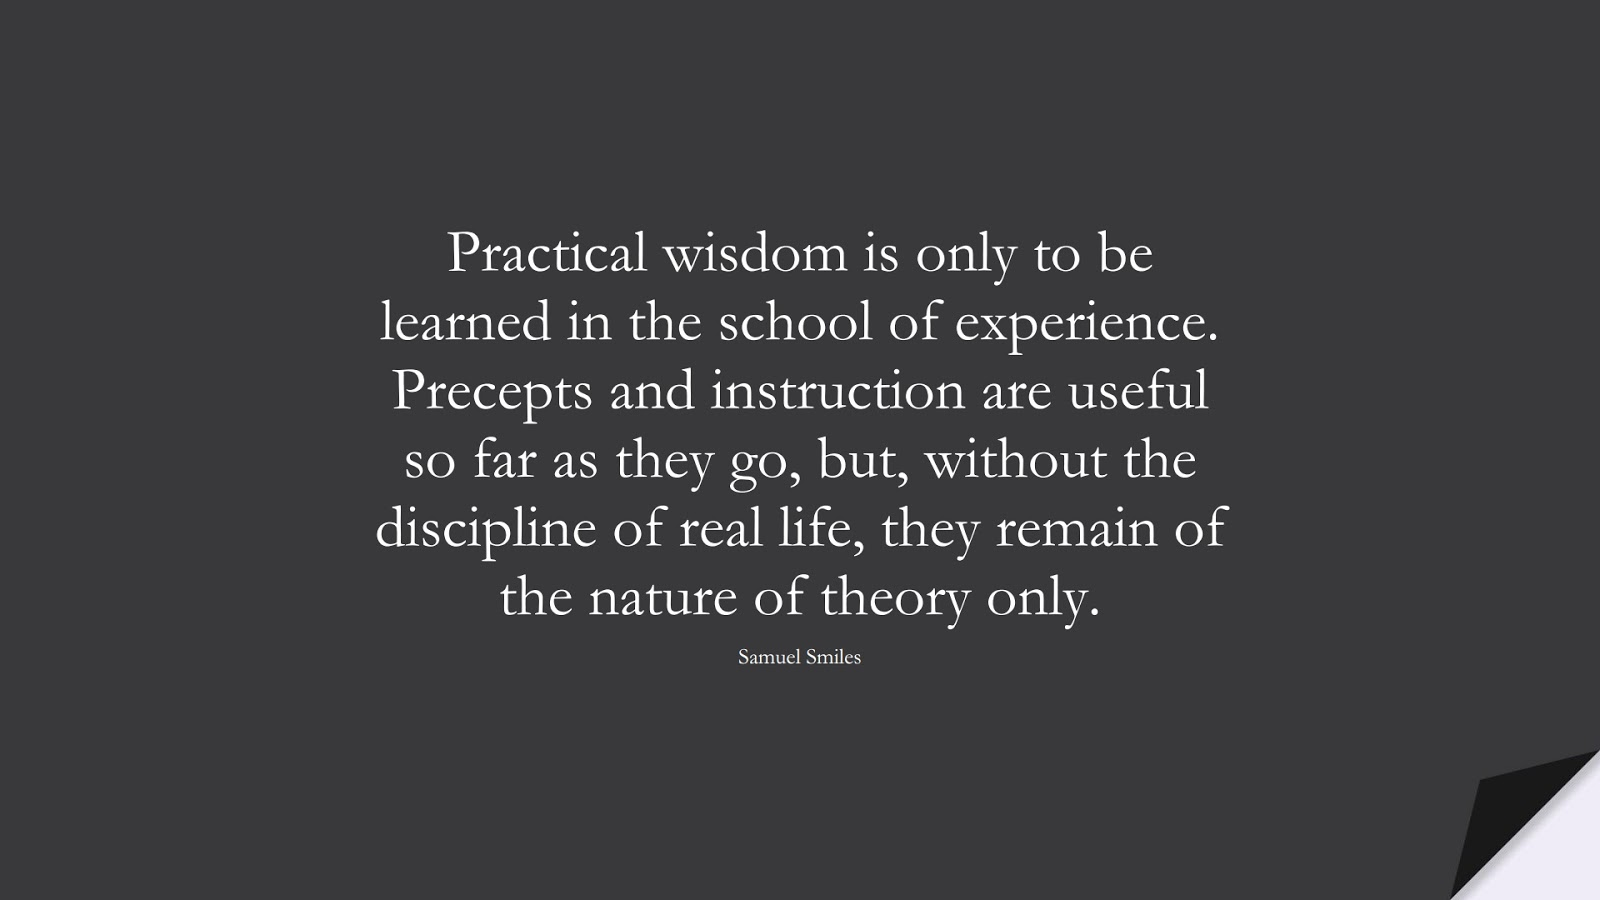 Practical wisdom is only to be learned in the school of experience. Precepts and instruction are useful so far as they go, but, without the discipline of real life, they remain of the nature of theory only. (Samuel Smiles);  #WordsofWisdom